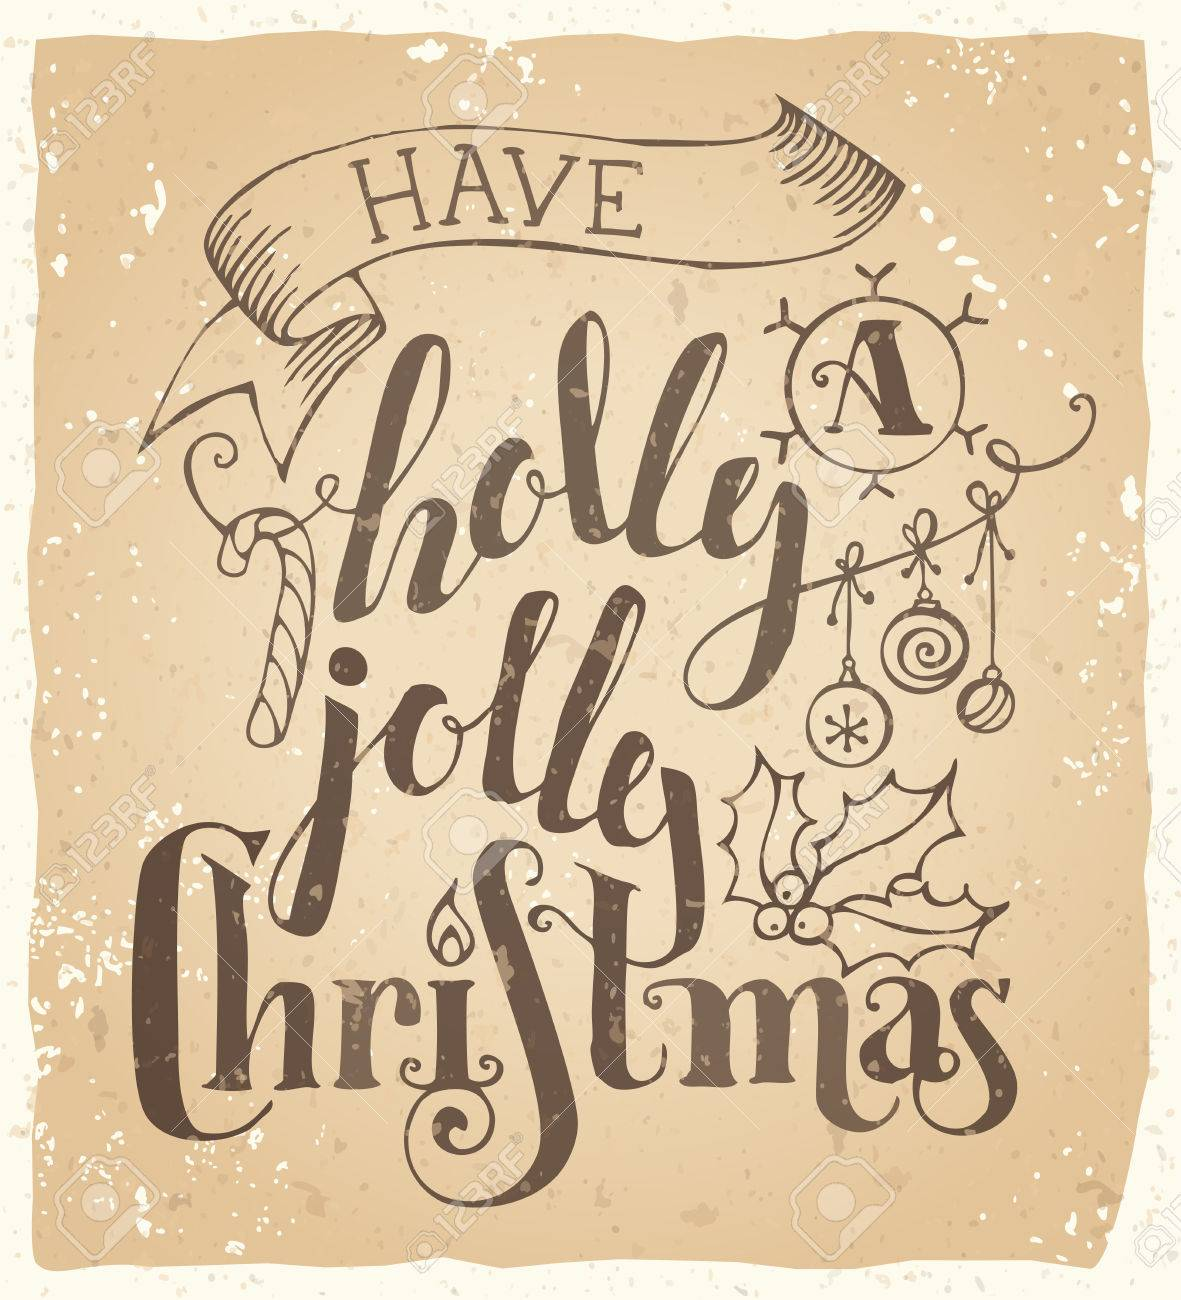 Vintage Merry Christmas.Have A Holly Jolly Christmas Vintage Merry Christmas Lettering